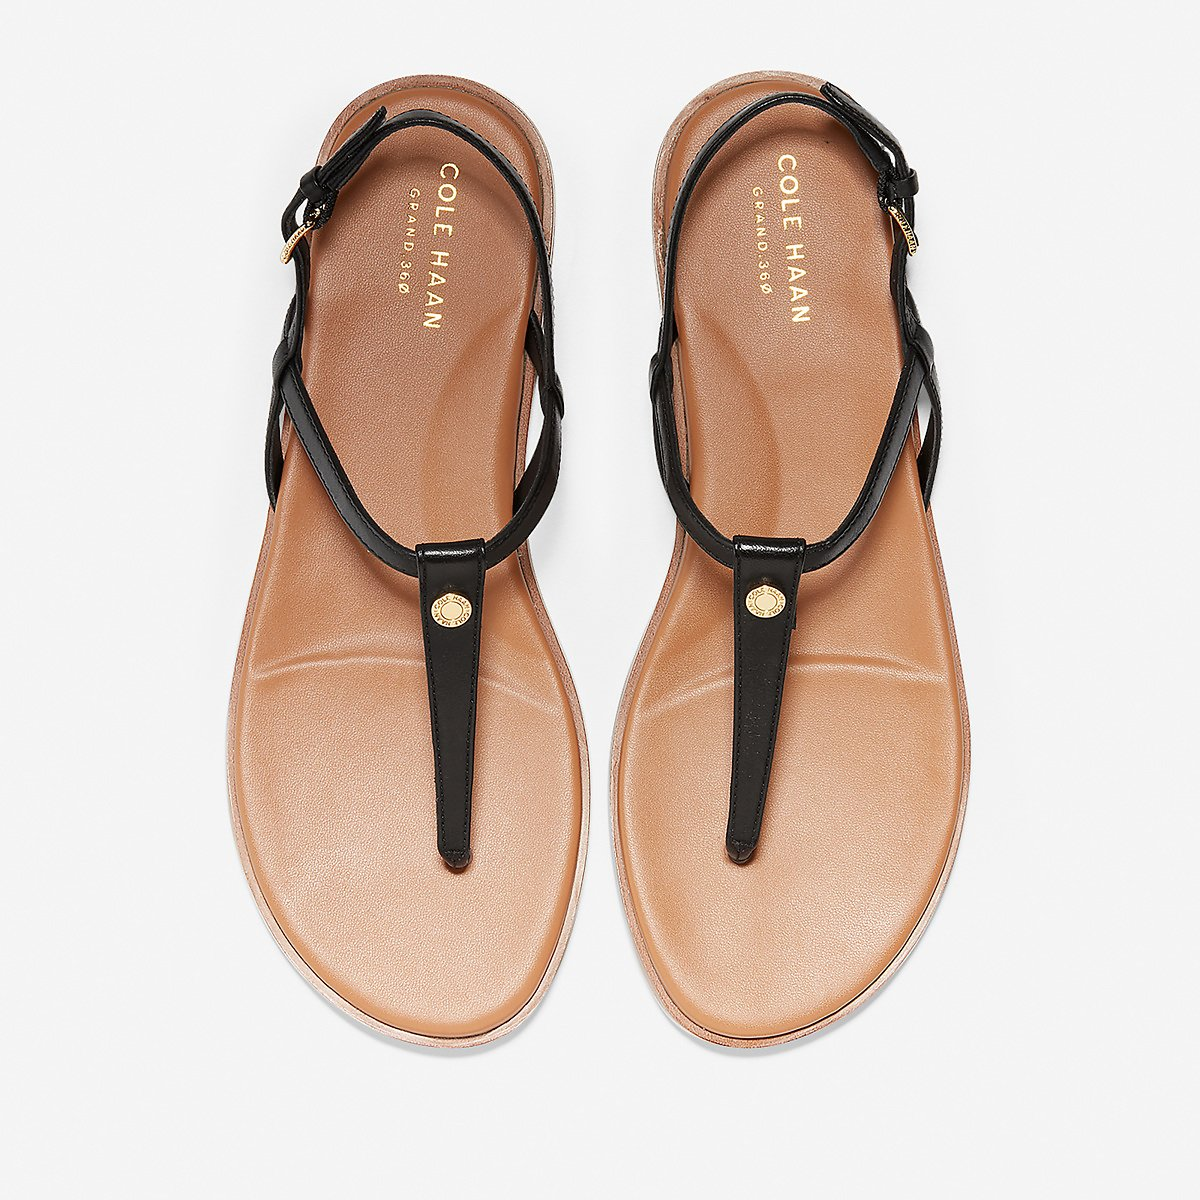 Women's Flora Thong Sandal in Black Leather